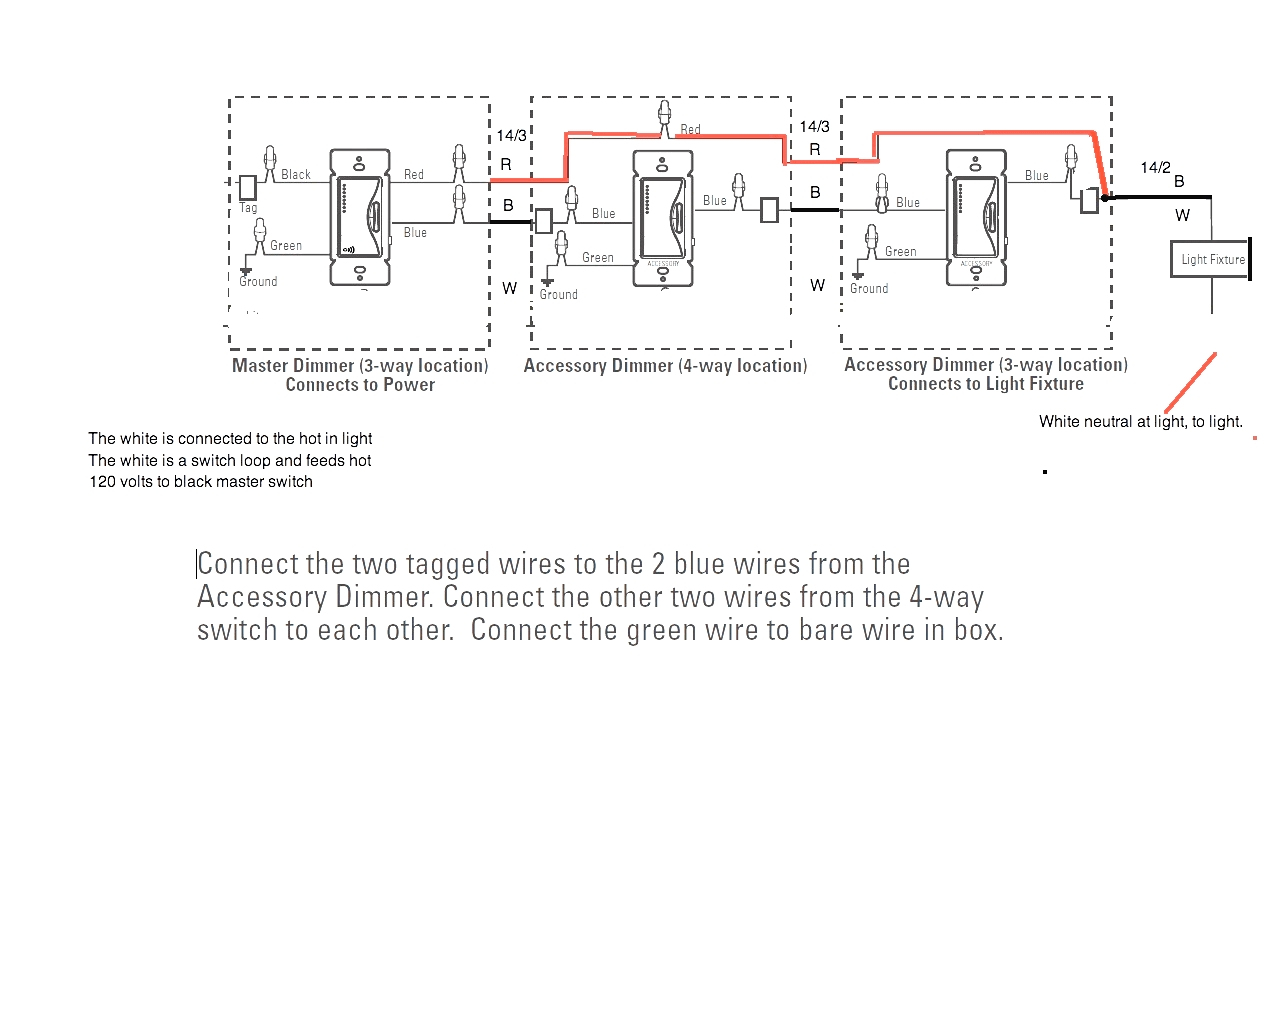 leviton dimmers wiring diagrams leviton 4 way switch wiring diagram | free wiring diagram leviton 6793 wiring diagram